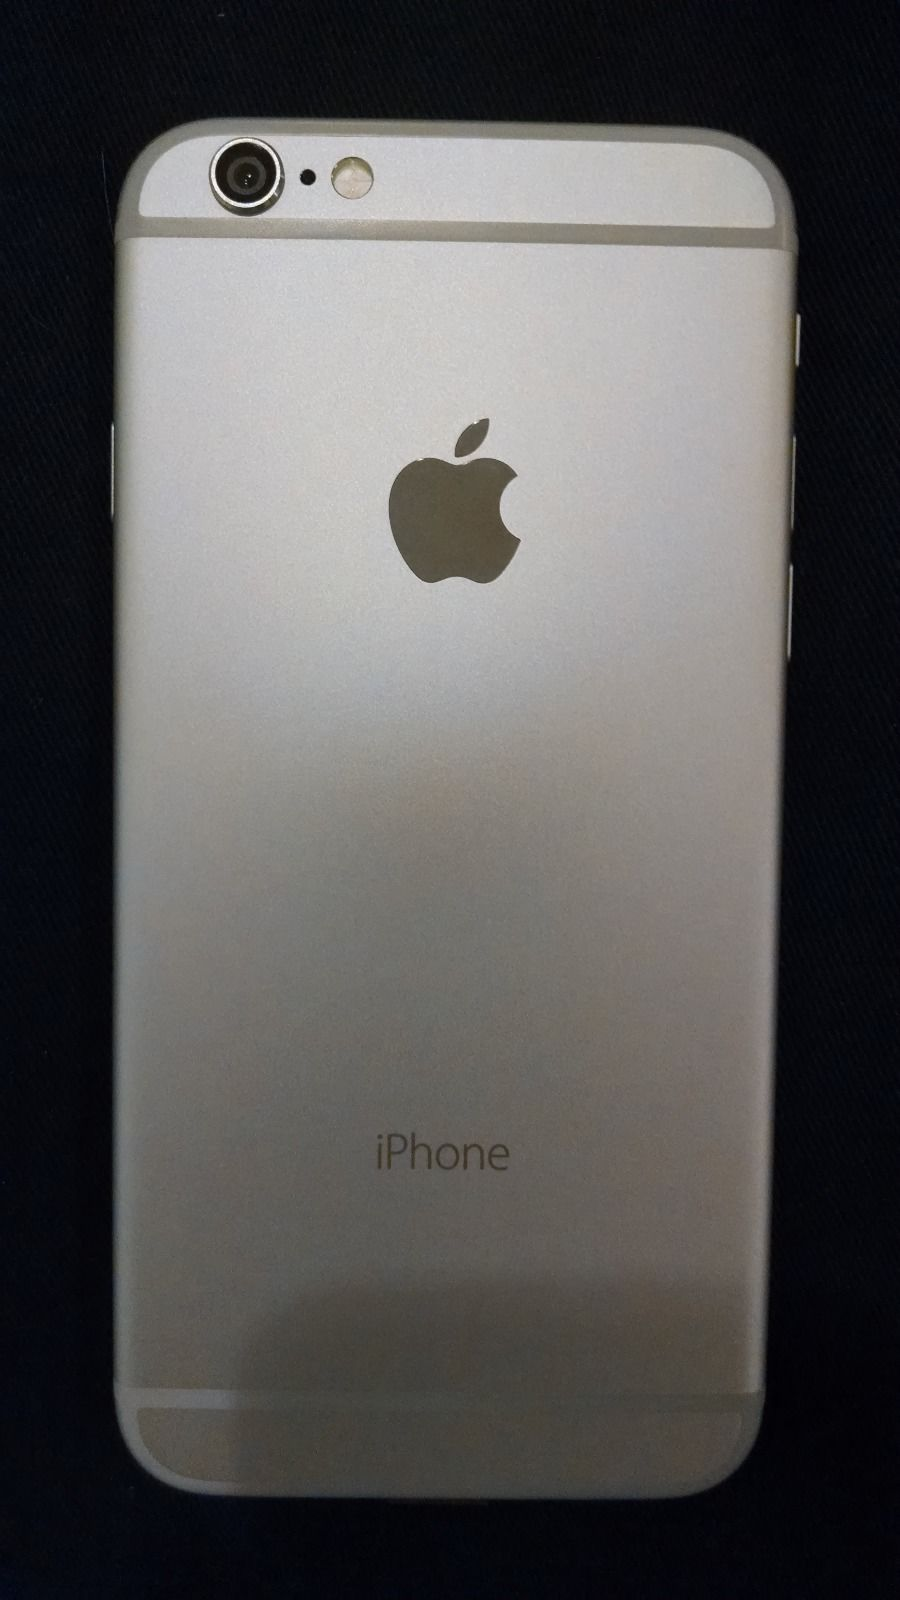 iphone-6-no-ebay-chega-a-brl-143mil-01